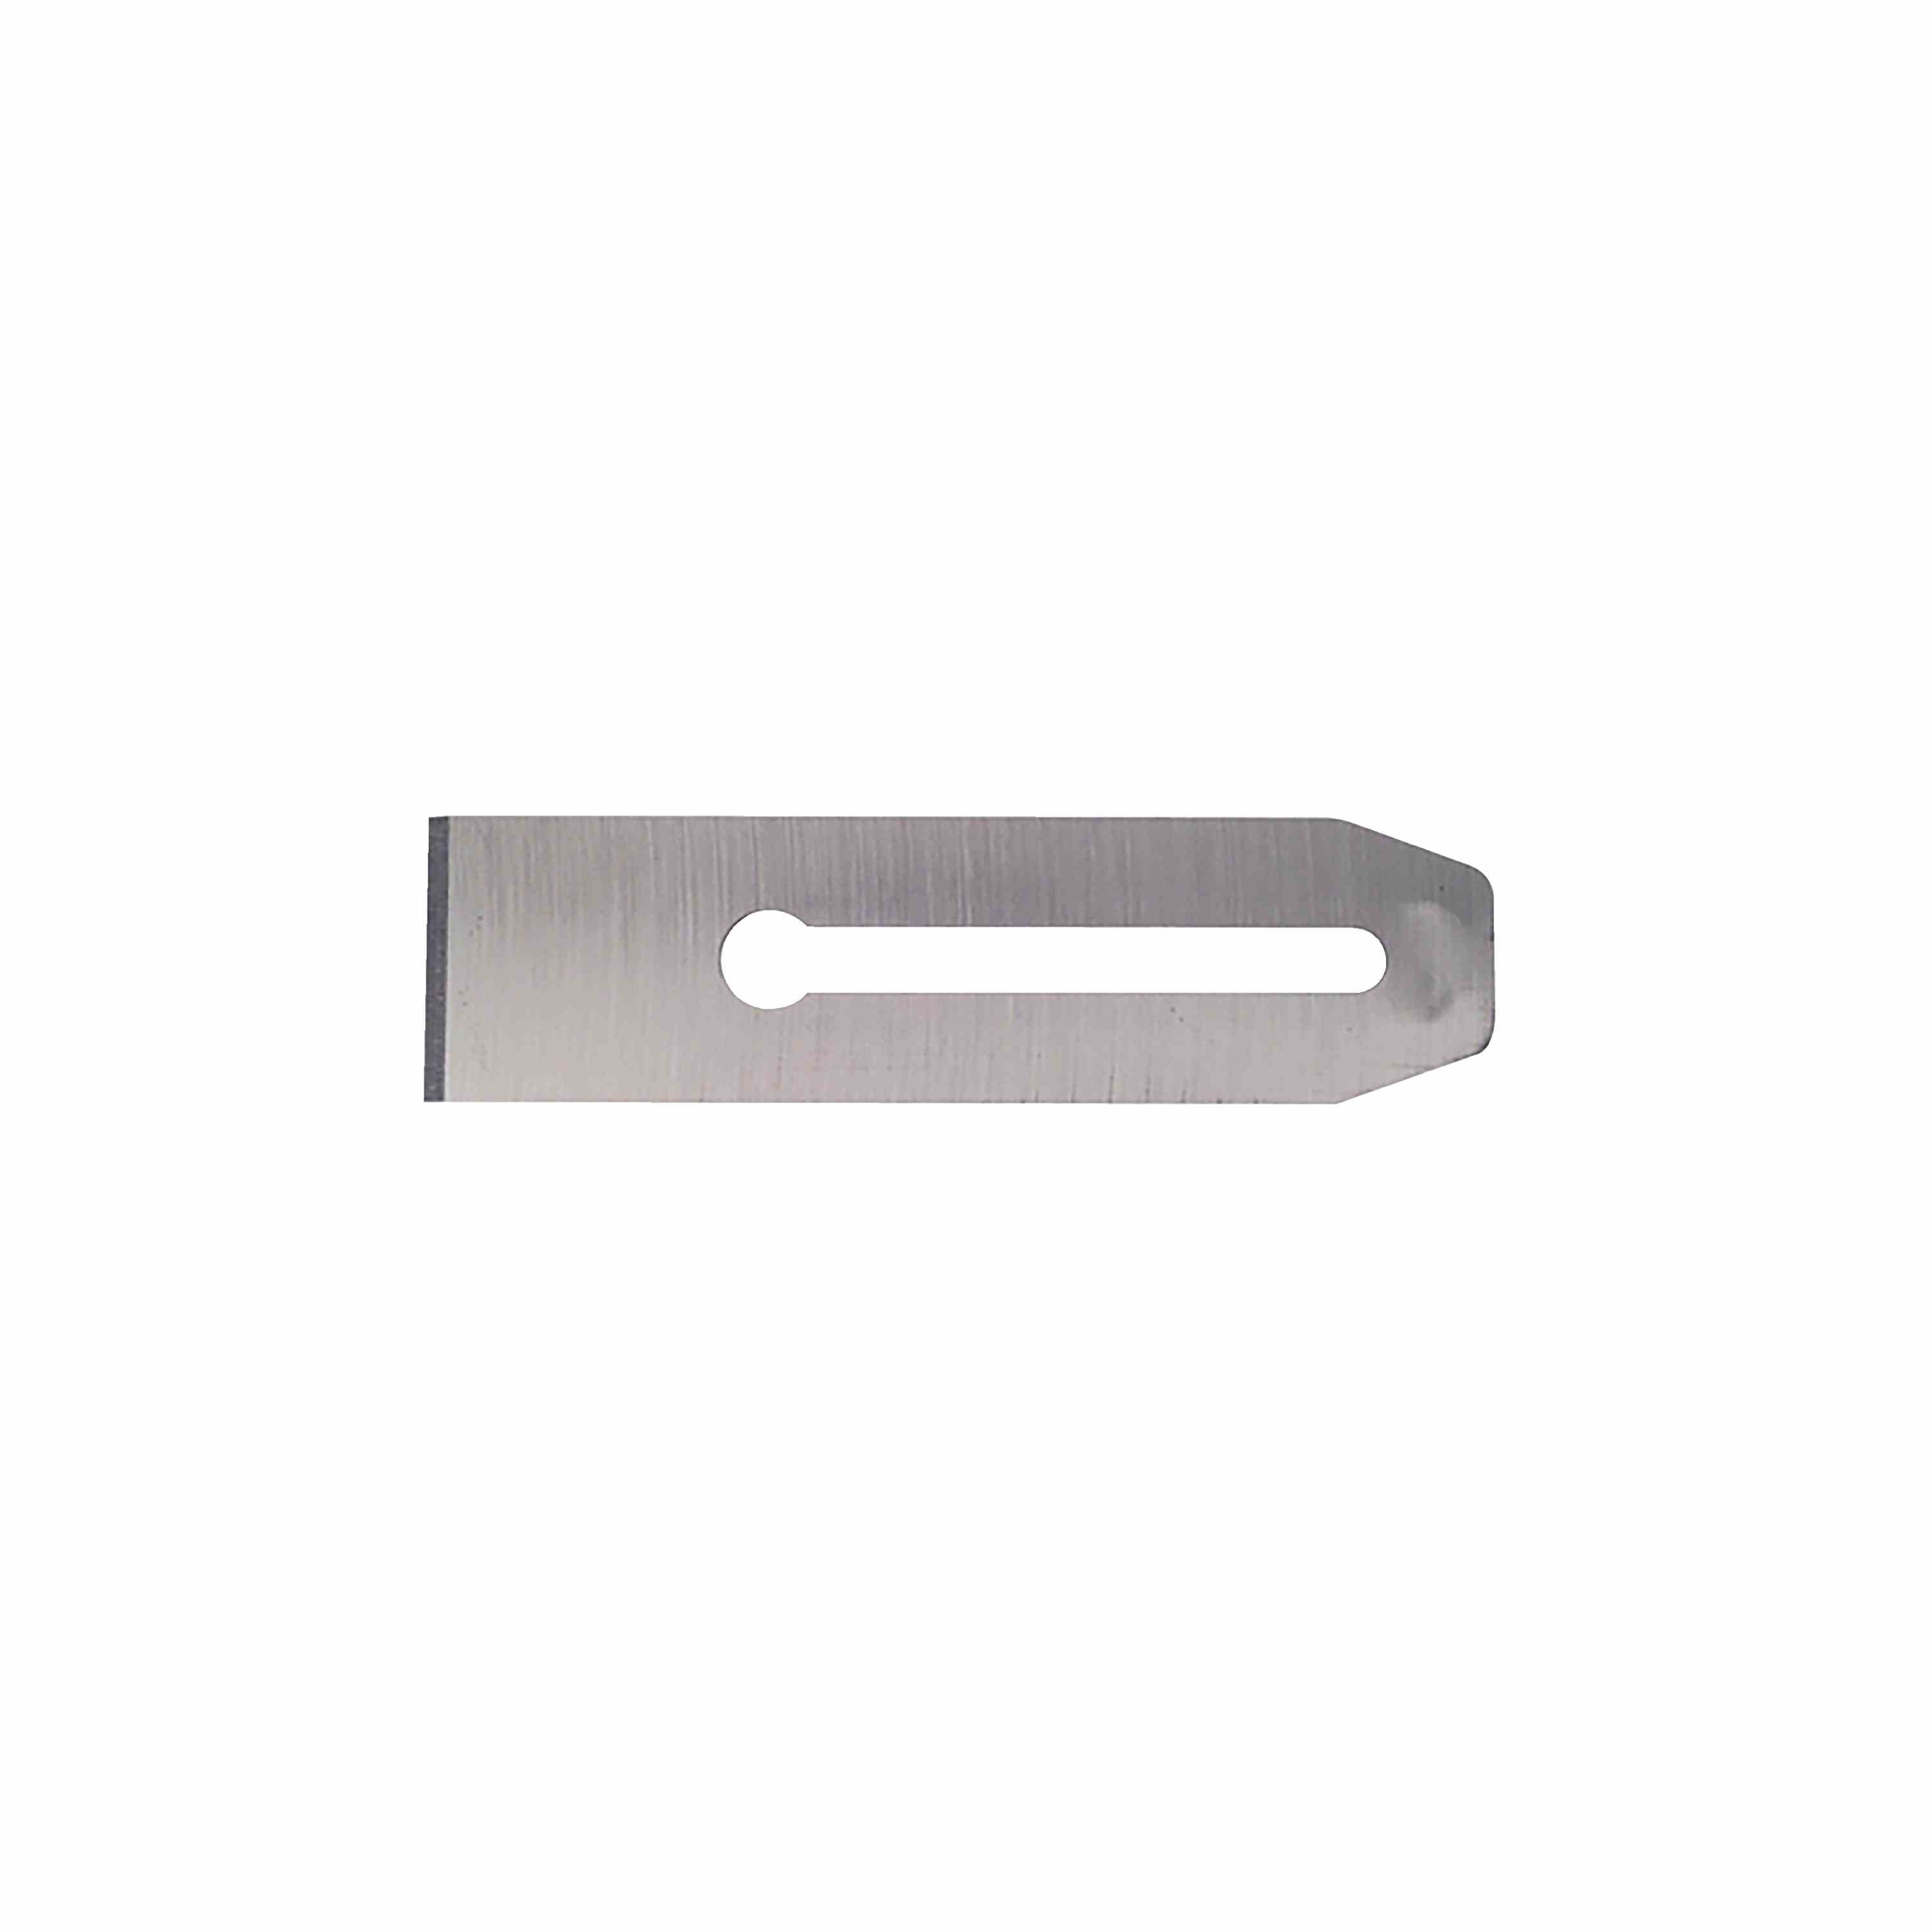 Stanley Tools - Iron Bench Plane Replacement Blade - 12-313